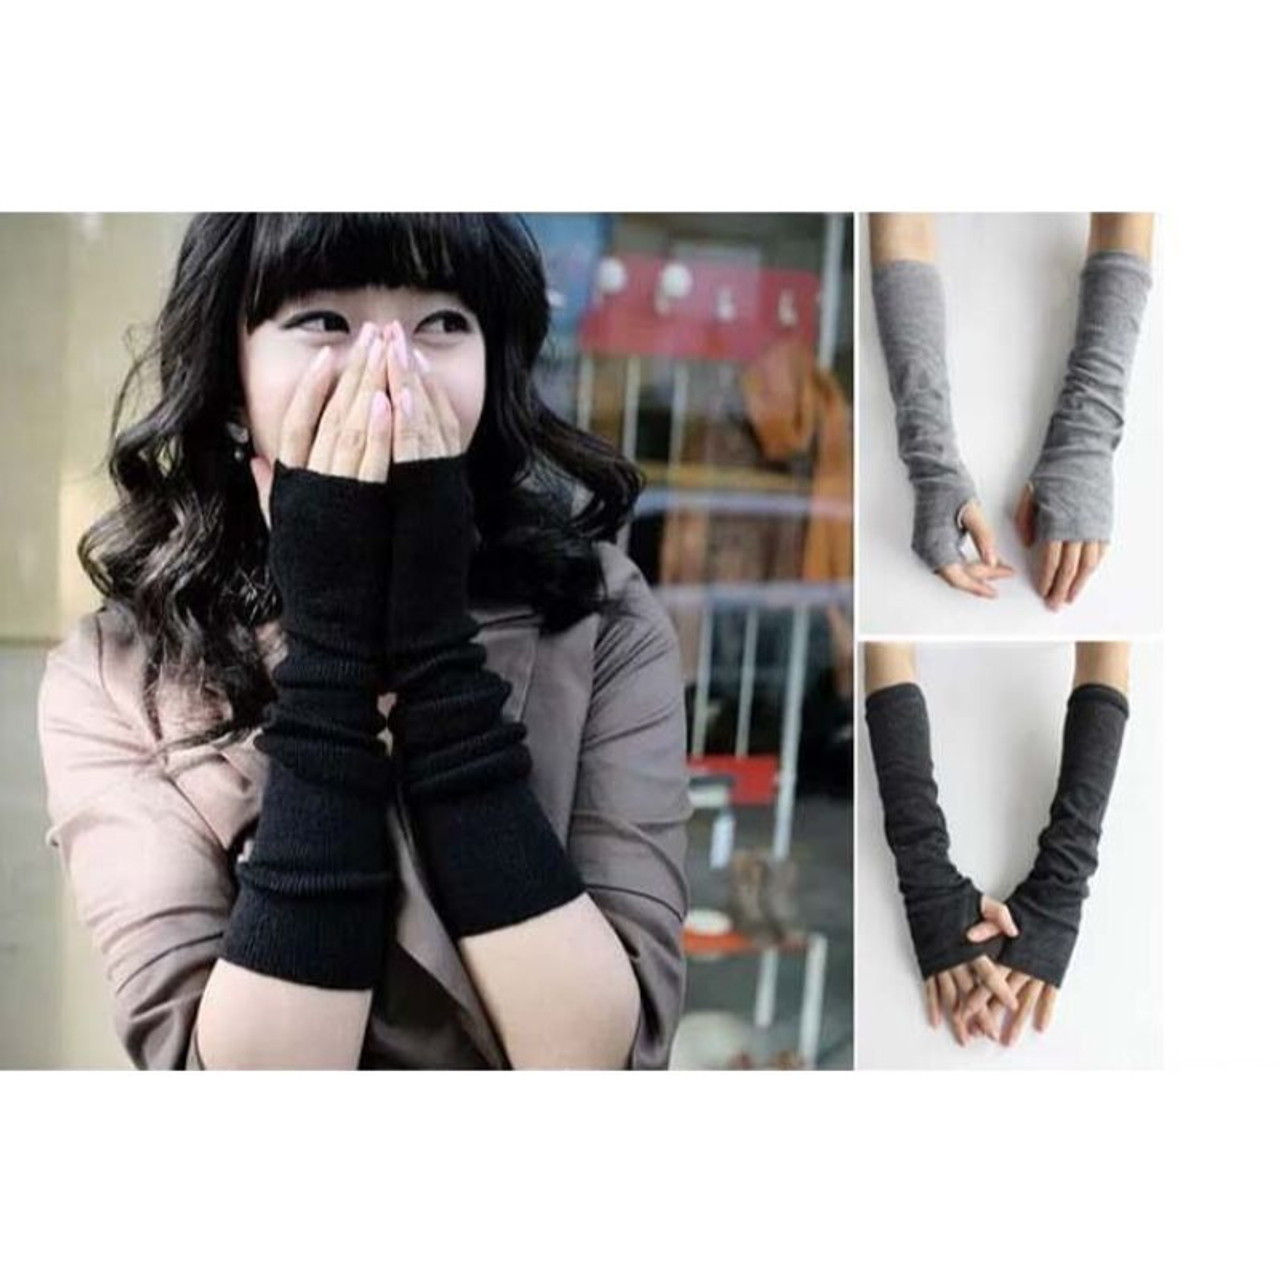 Stylish Winter Hand Warmers - 1 or 2 Pack